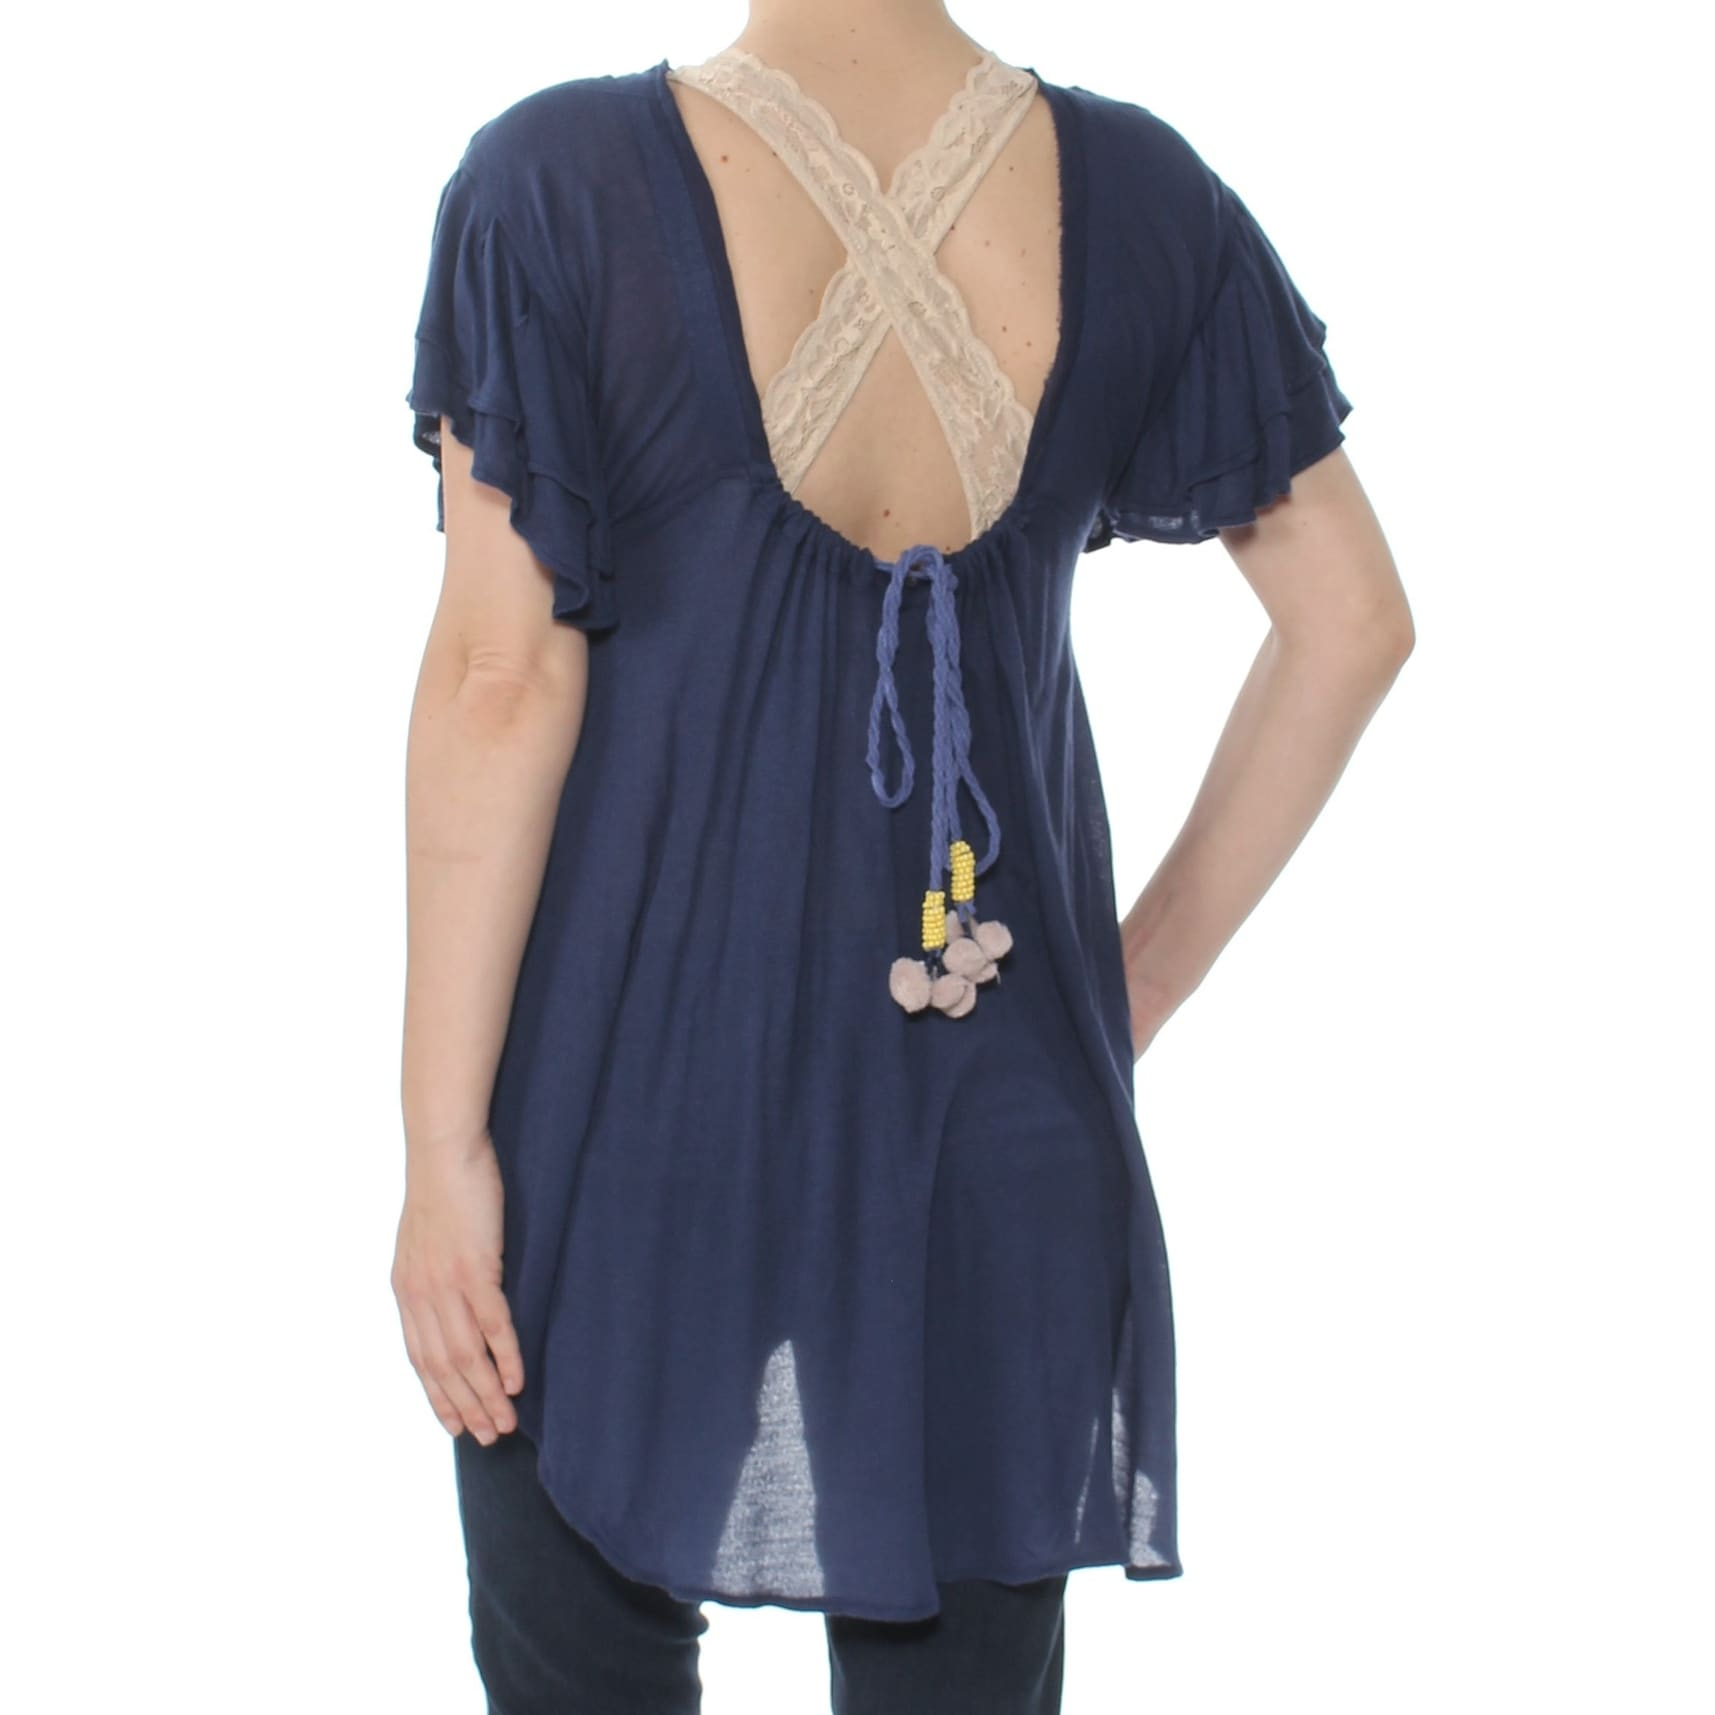 41fbf08ee56 Shop FREE PEOPLE Womens Navy Embroidered Short Sleeve V Neck Tunic Top  Size: XS - Free Shipping On Orders Over $45 - Overstock - 27795154